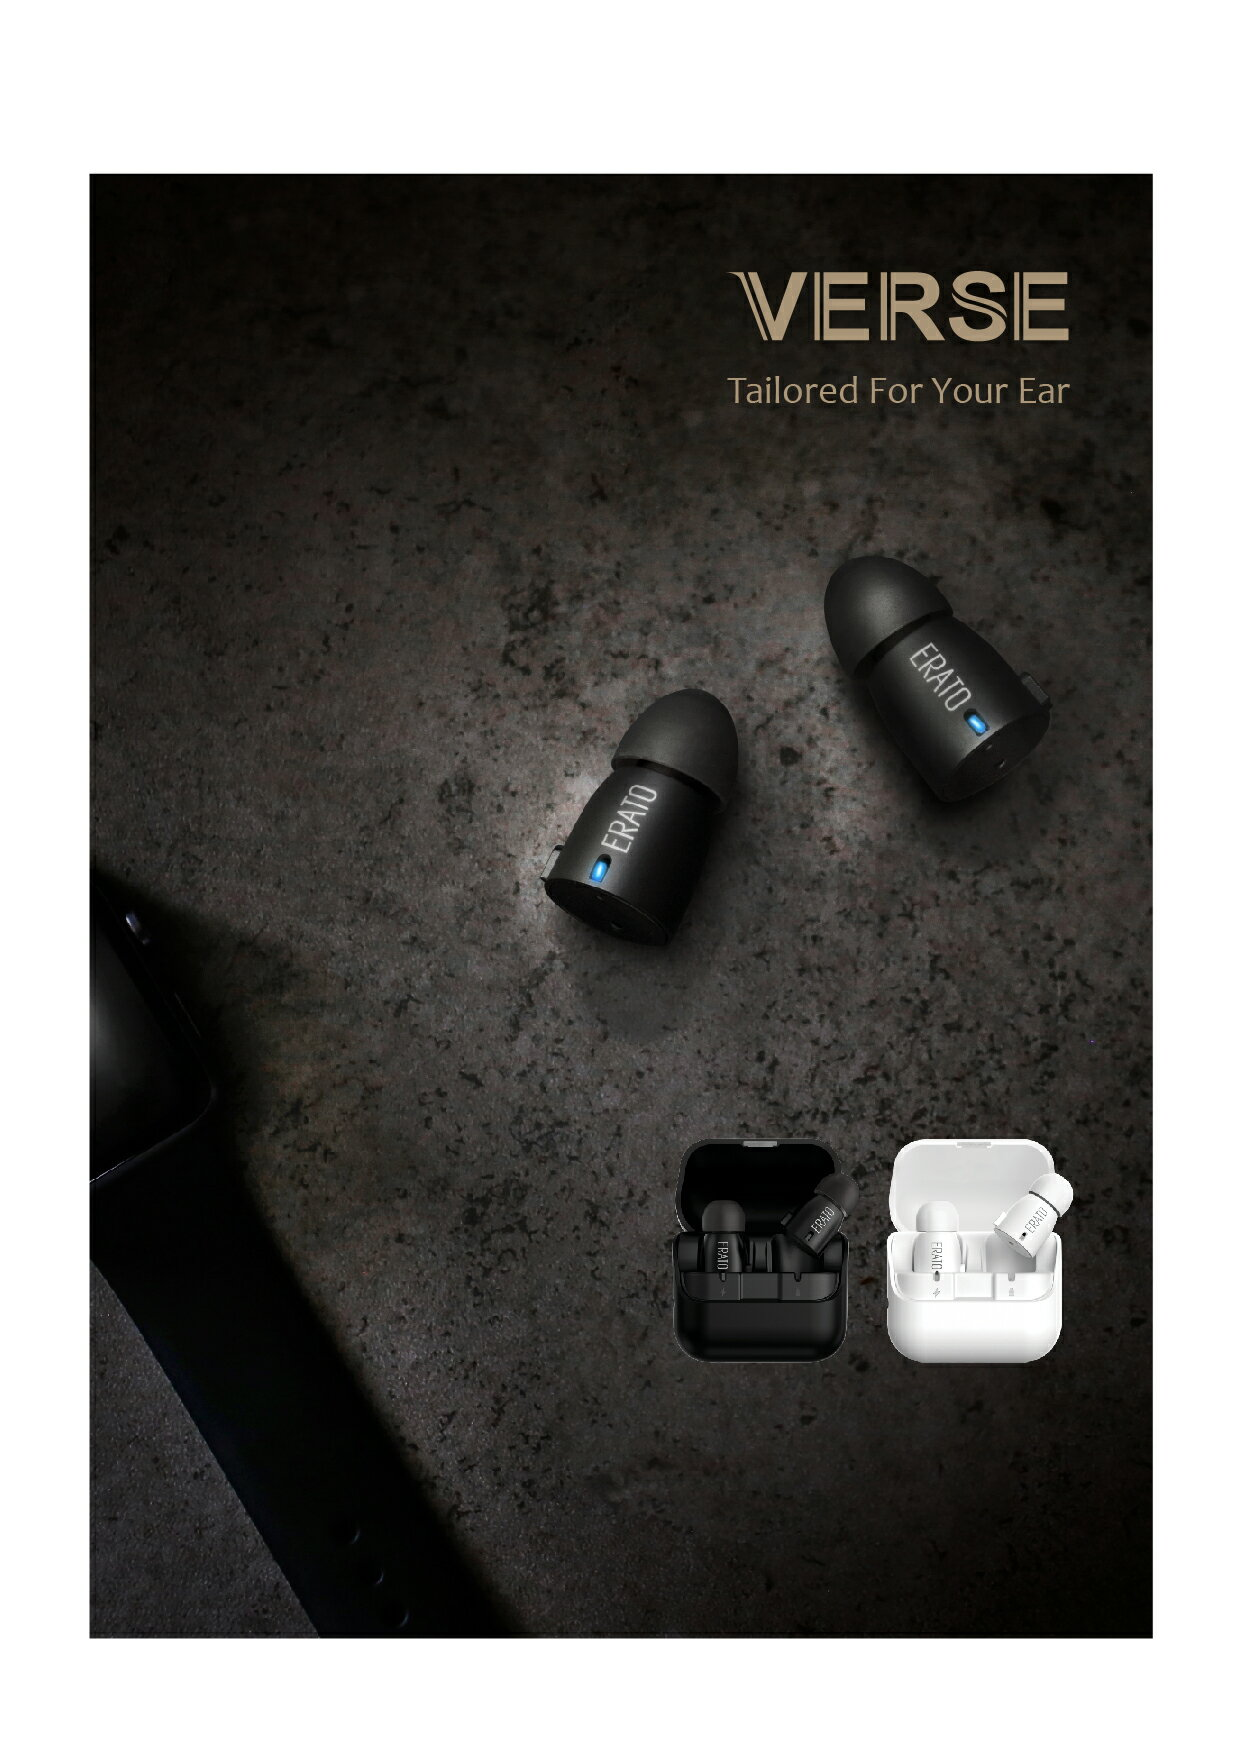 ERATO Verse Wireless Bluetooth Earbuds - Black (AEVE00BK) with Portable Charging Case 2